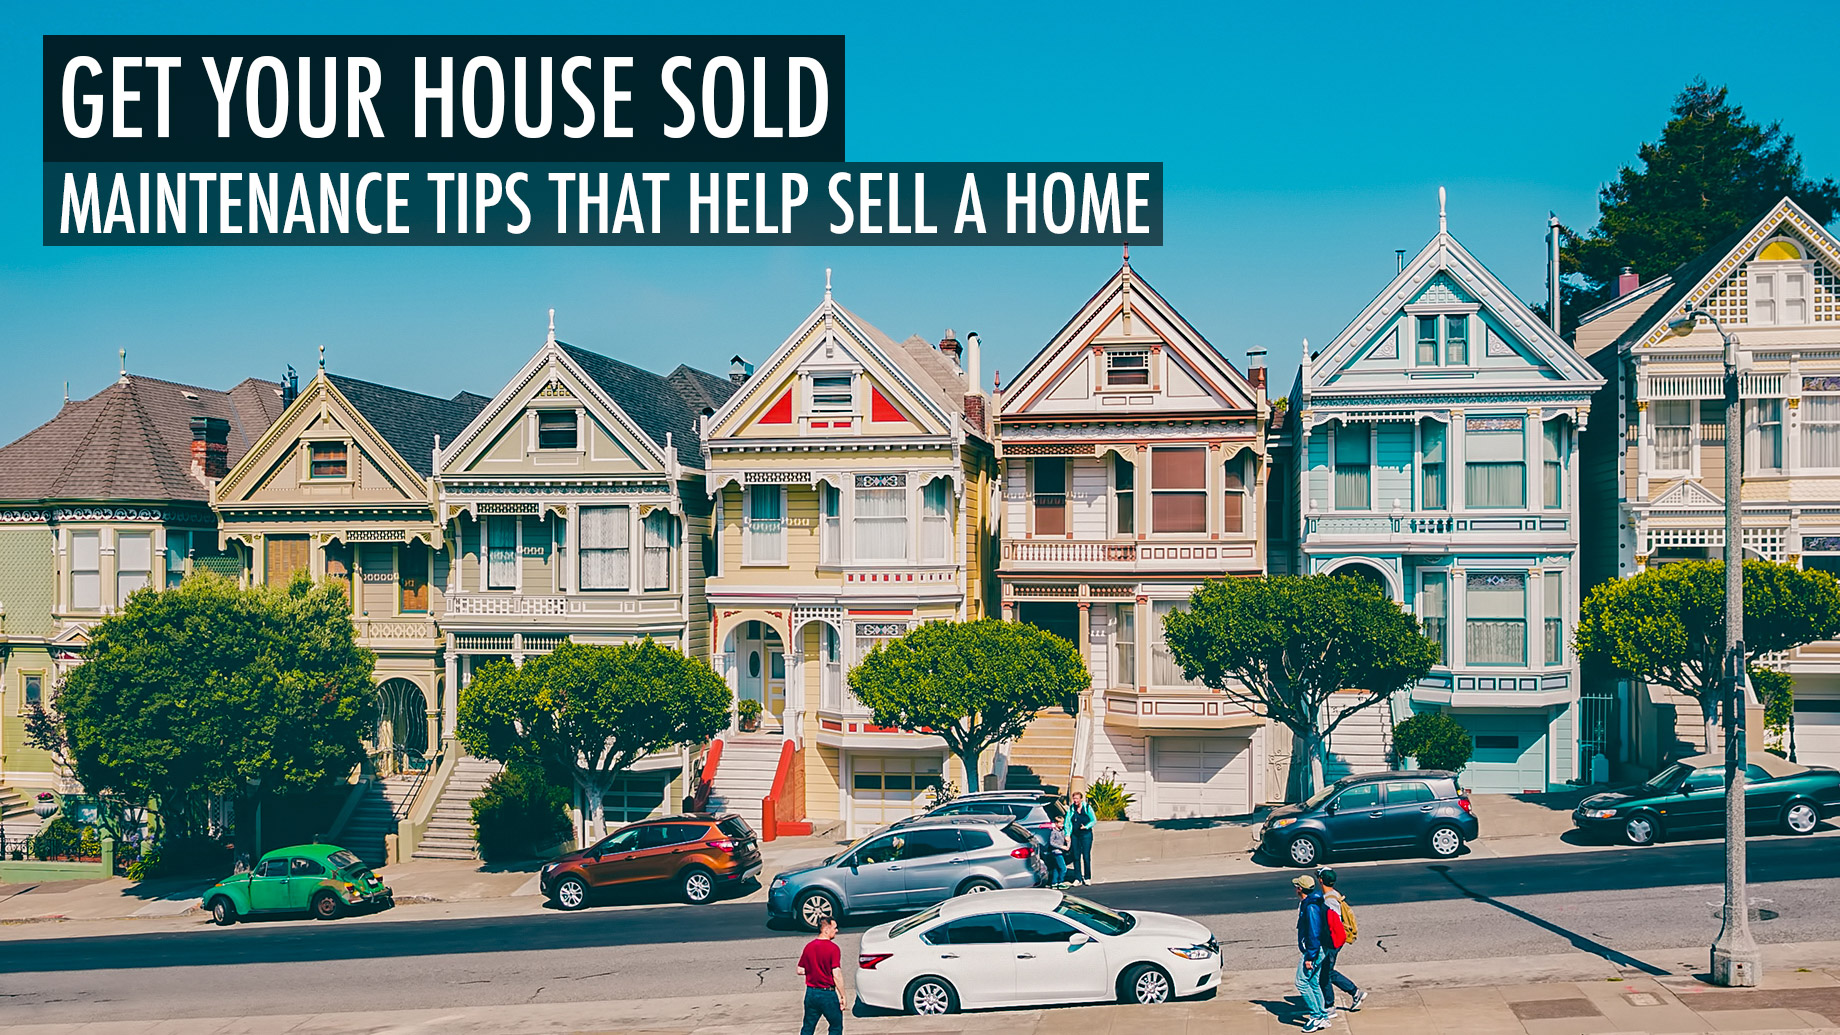 Get Your House Sold - Maintenance Tips That Help Sell a Home